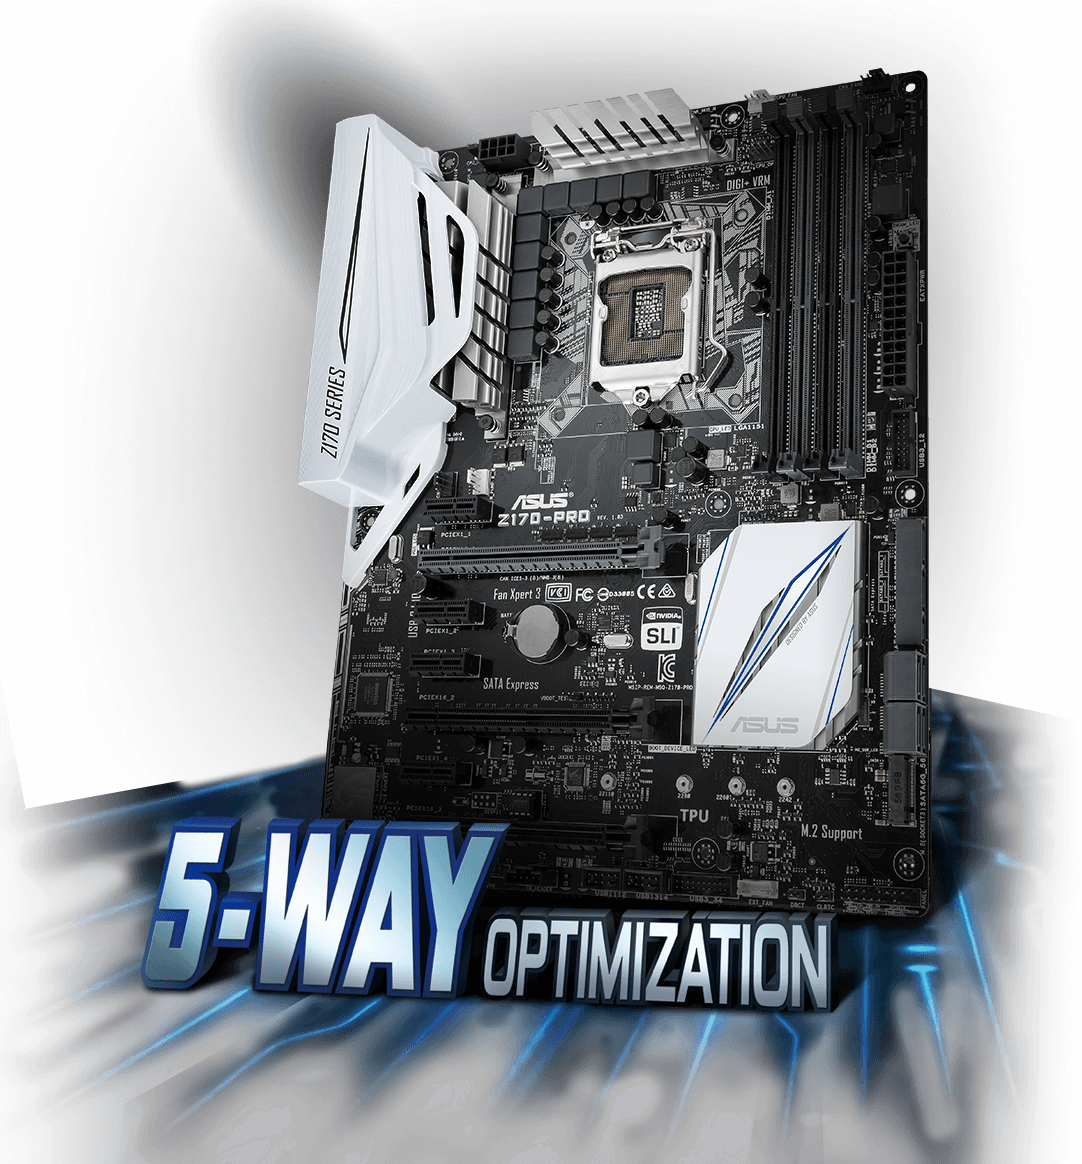 https://www.asus.com/Motherboards/Z170-PRO/overview/websites/global/products/rNcl9BhUV4NzvQIk/images/kv/main_kv.png